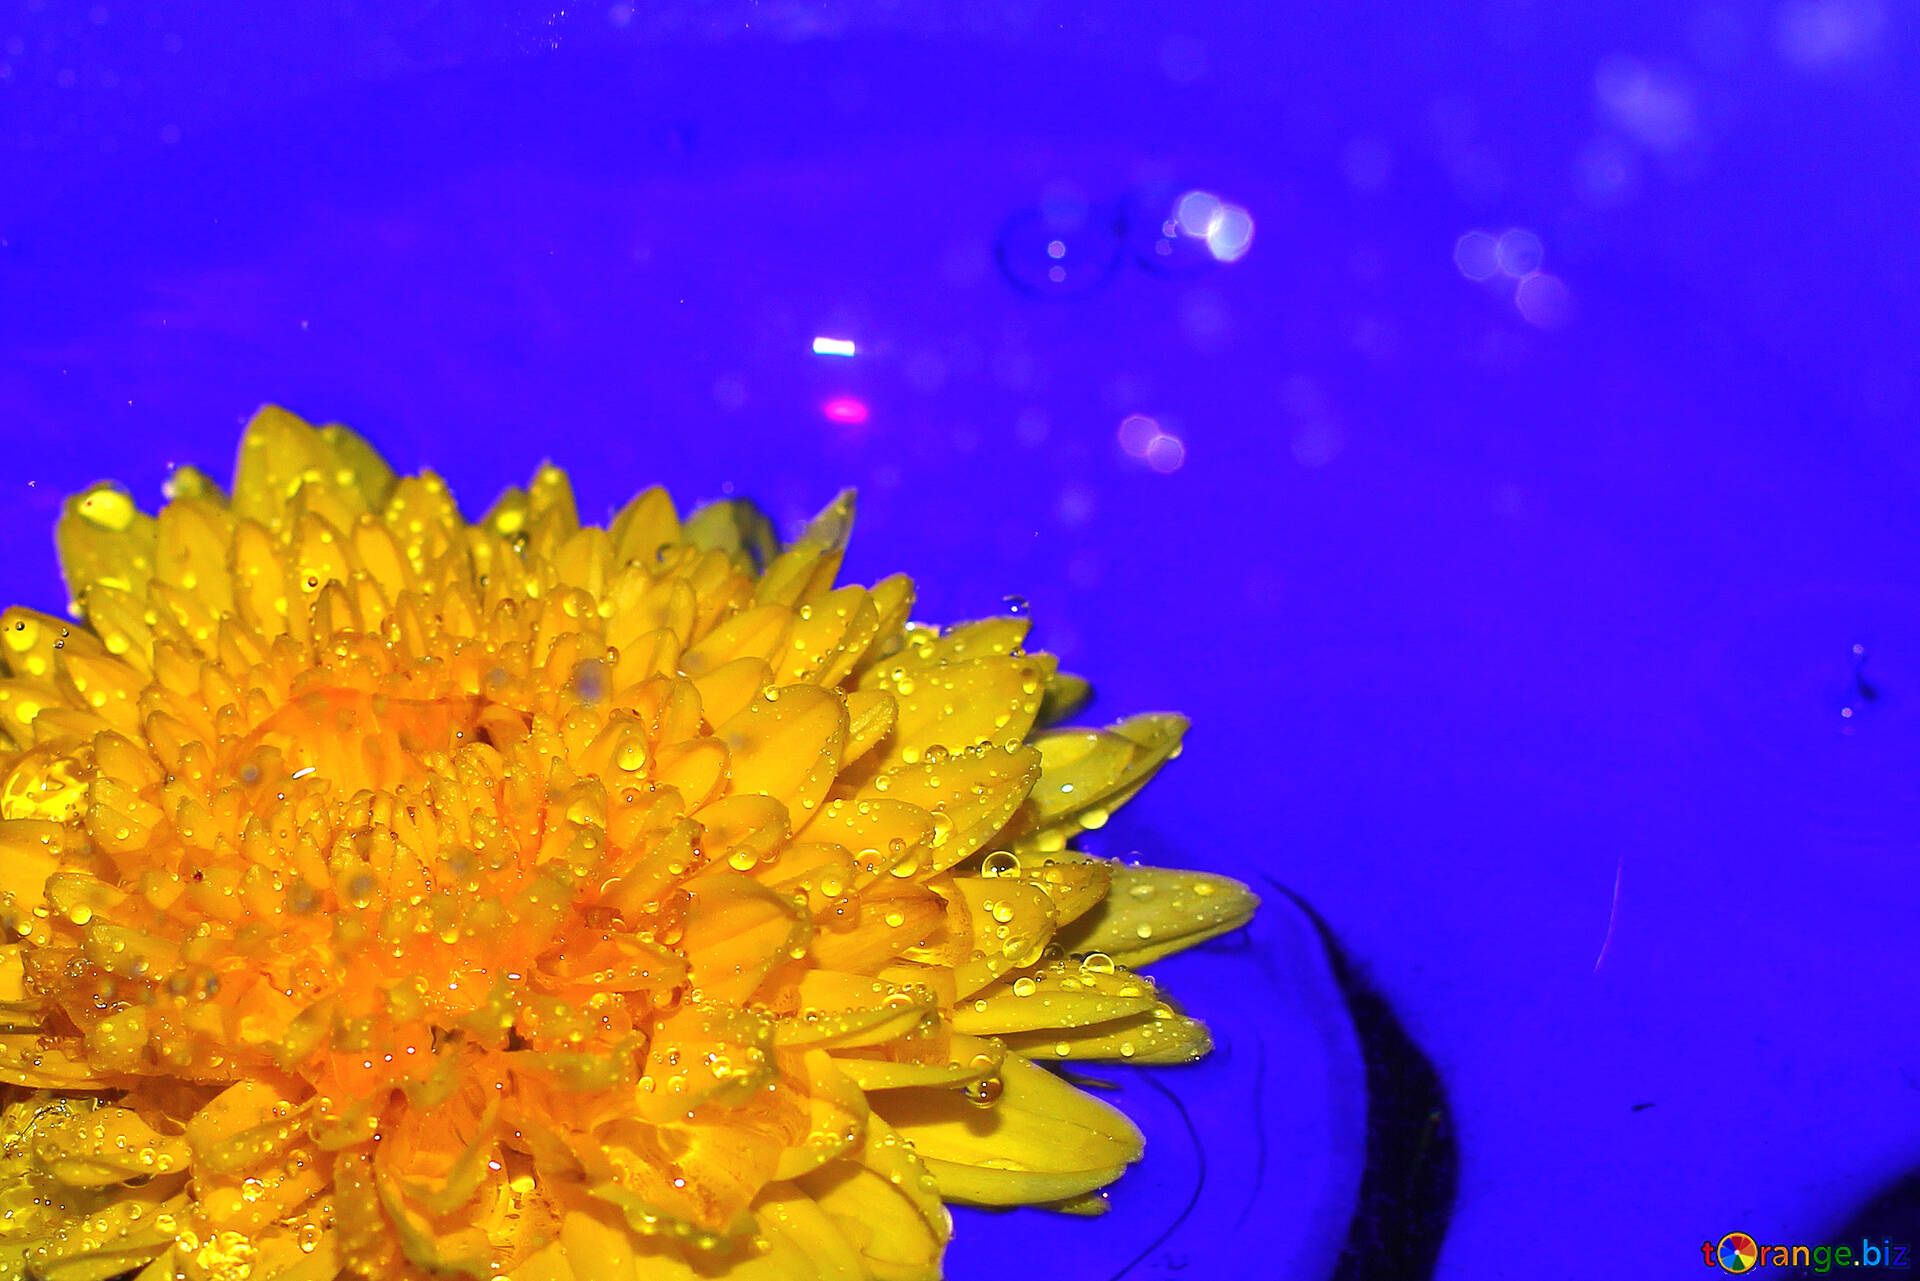 Flower In Cup Blue Background With Yellow Flower Summer 37275